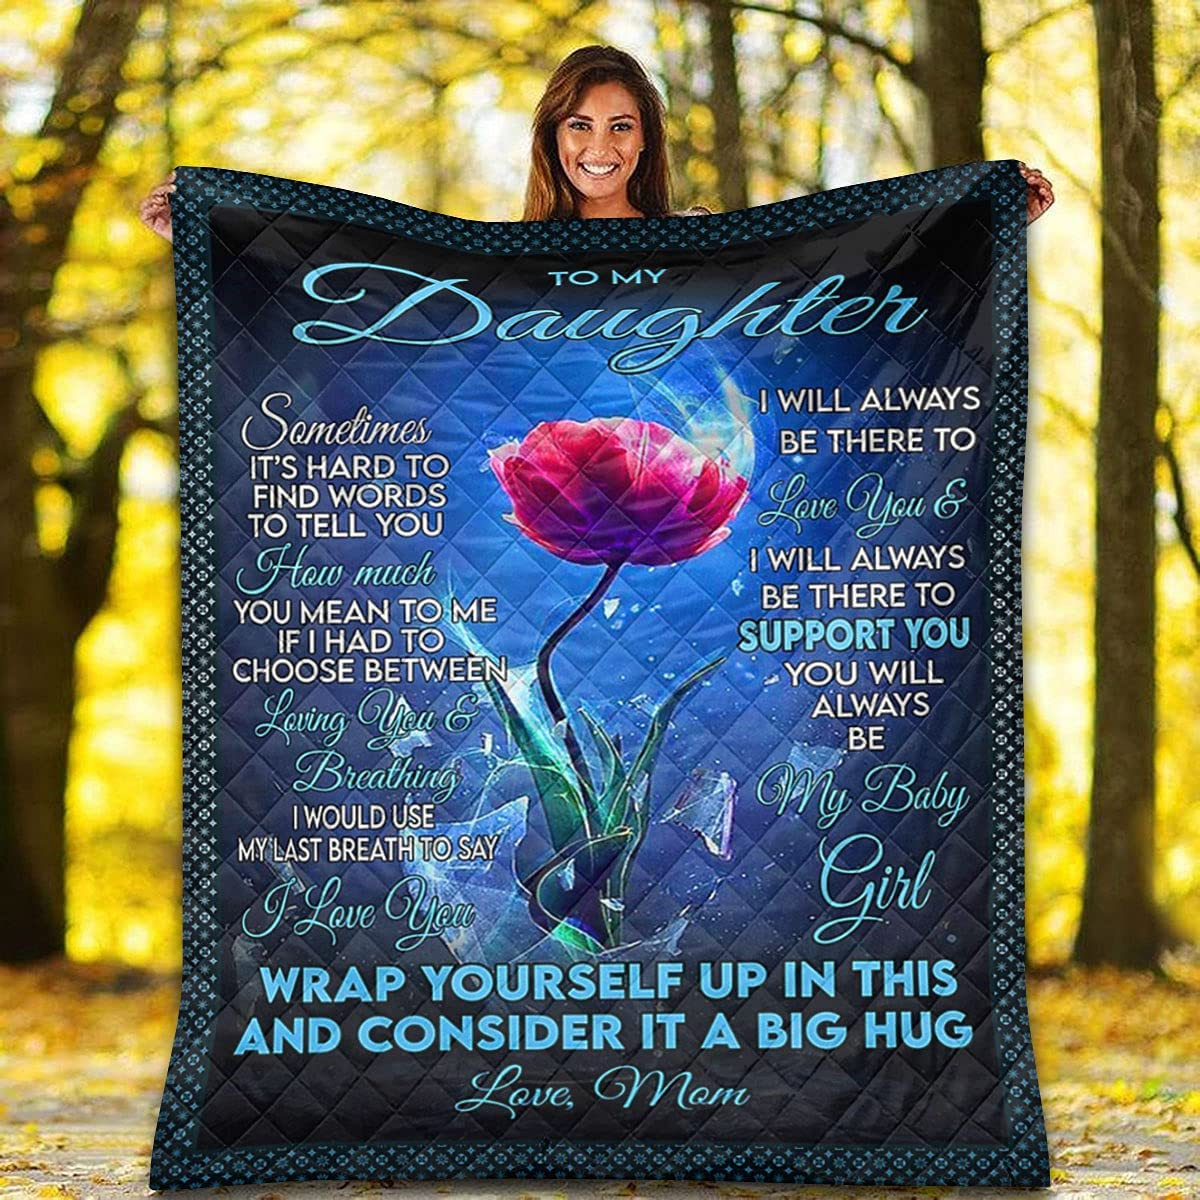 Boston Mall 5% OFF to My Daughter Quilt - Flower P in Yourself Up Wrap This